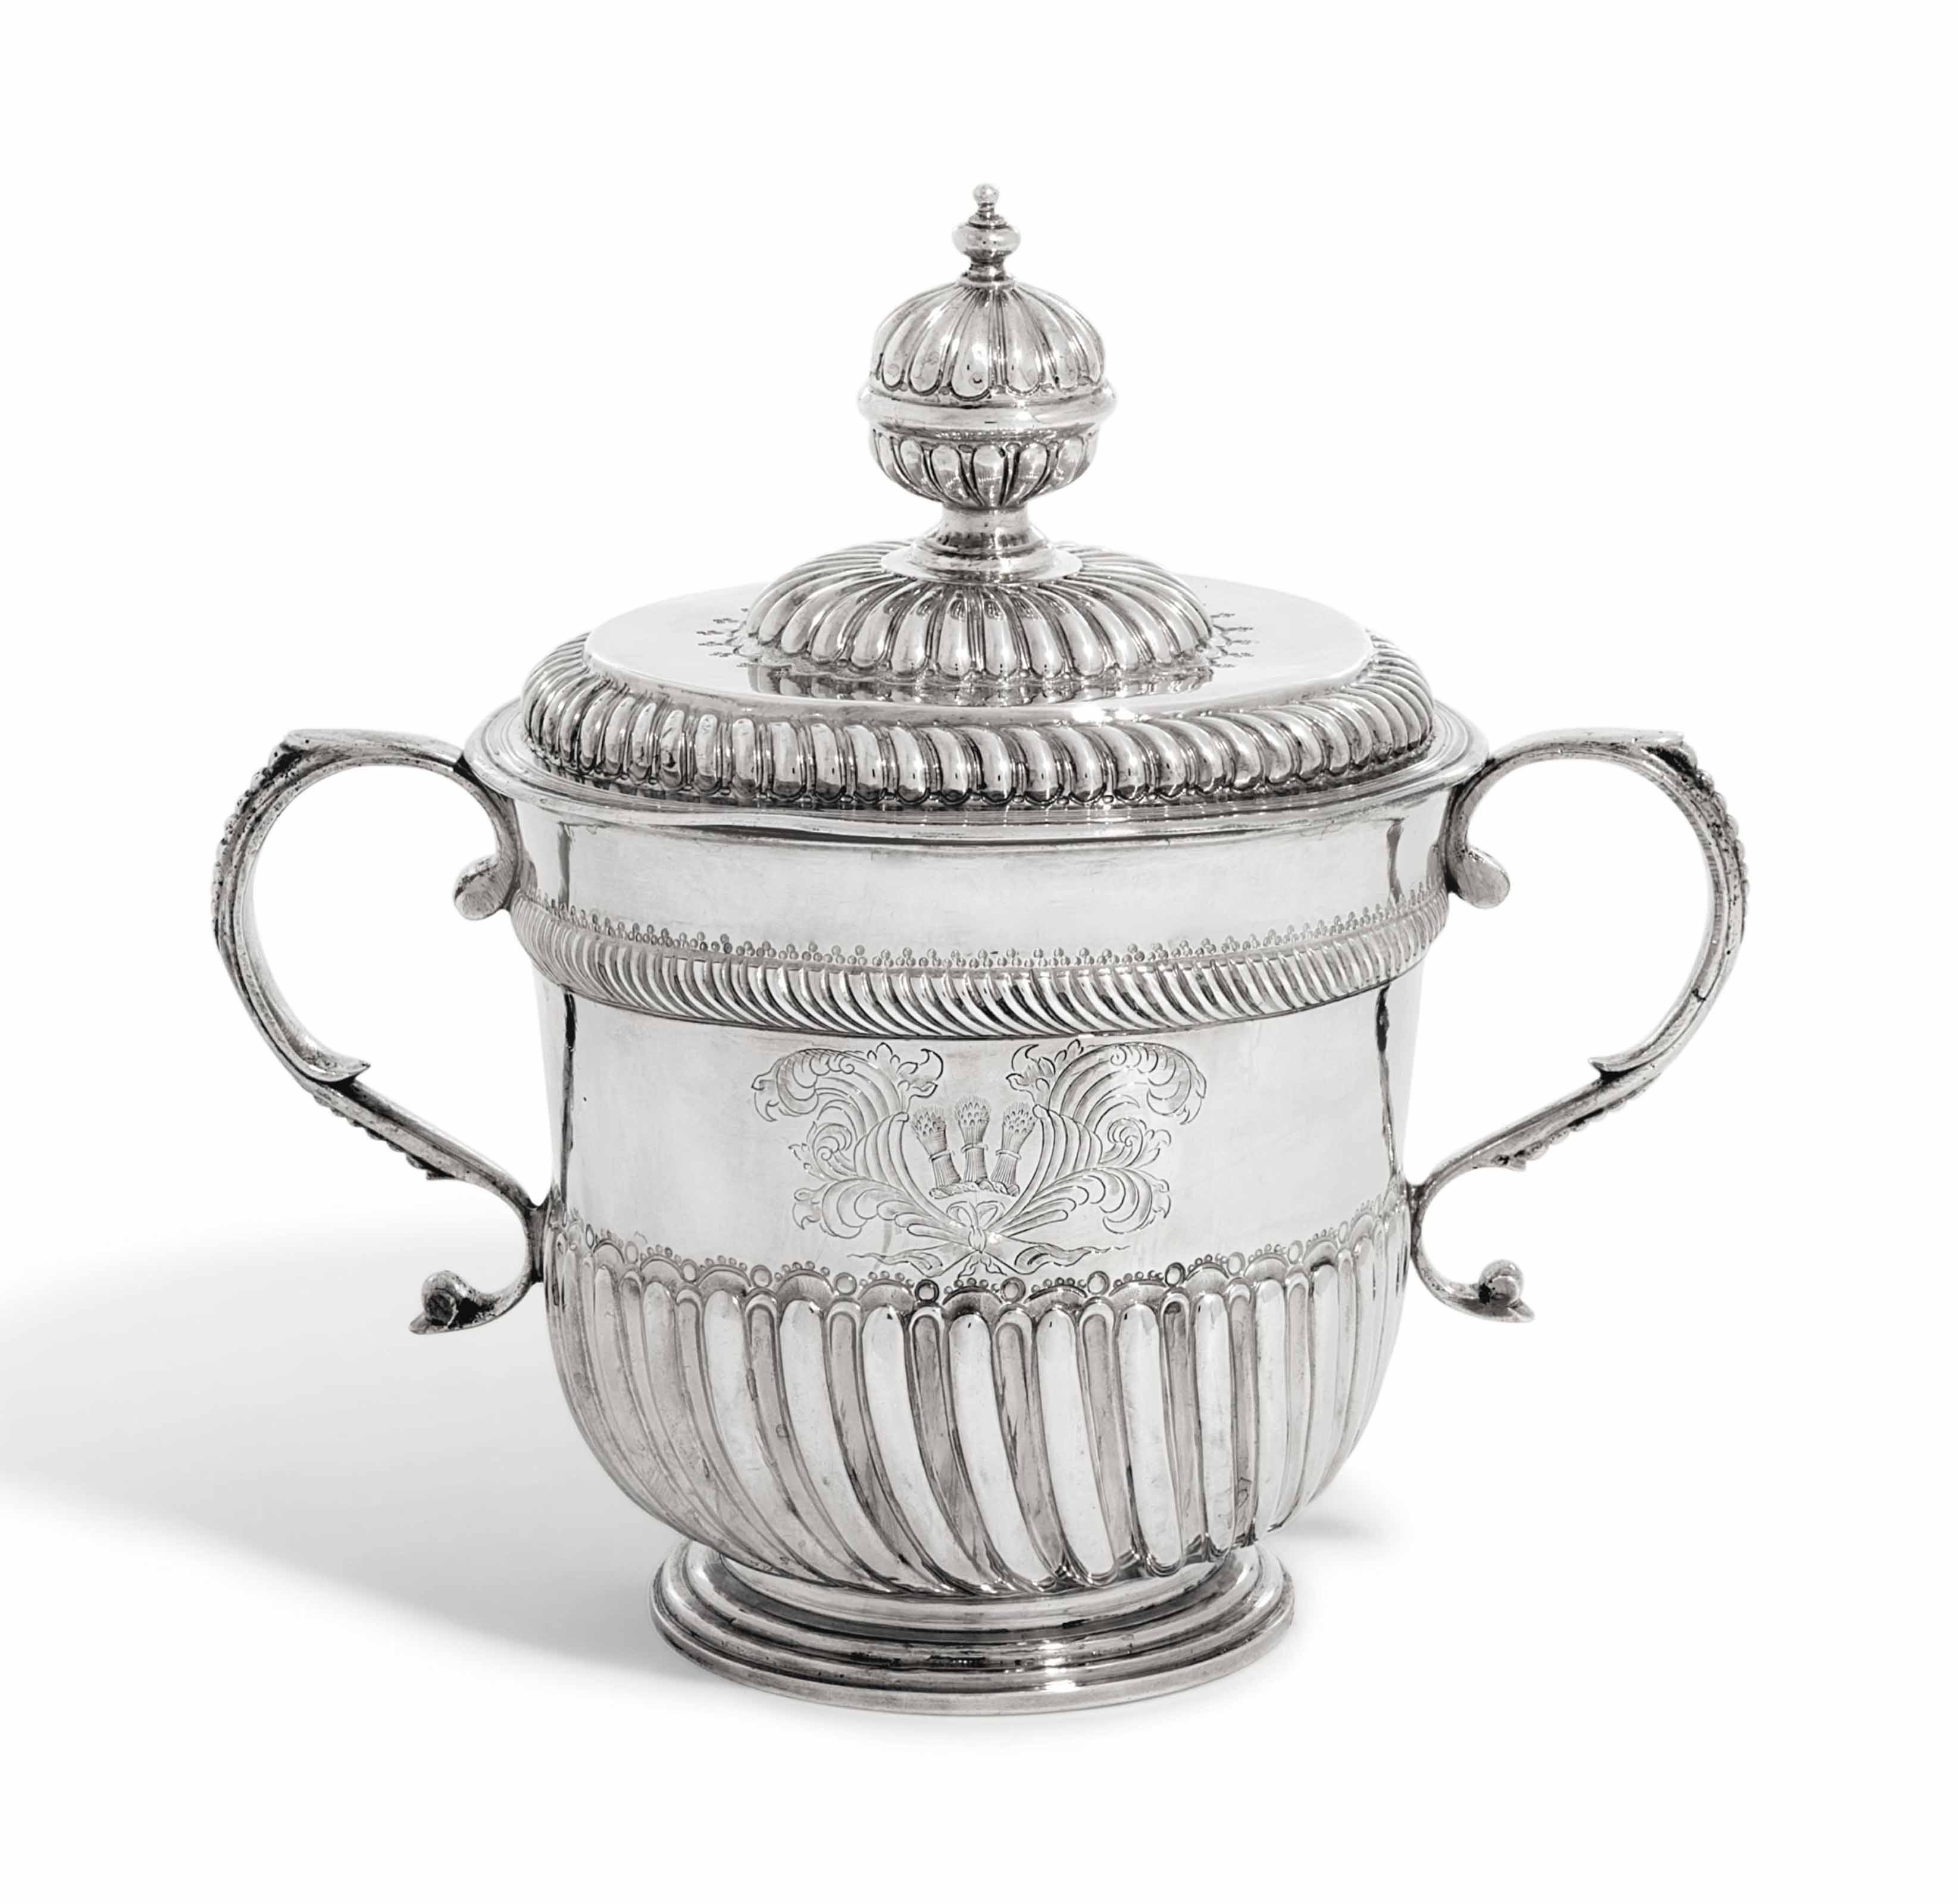 A WILLIAM AND MARY SILVER CUP AND COVER